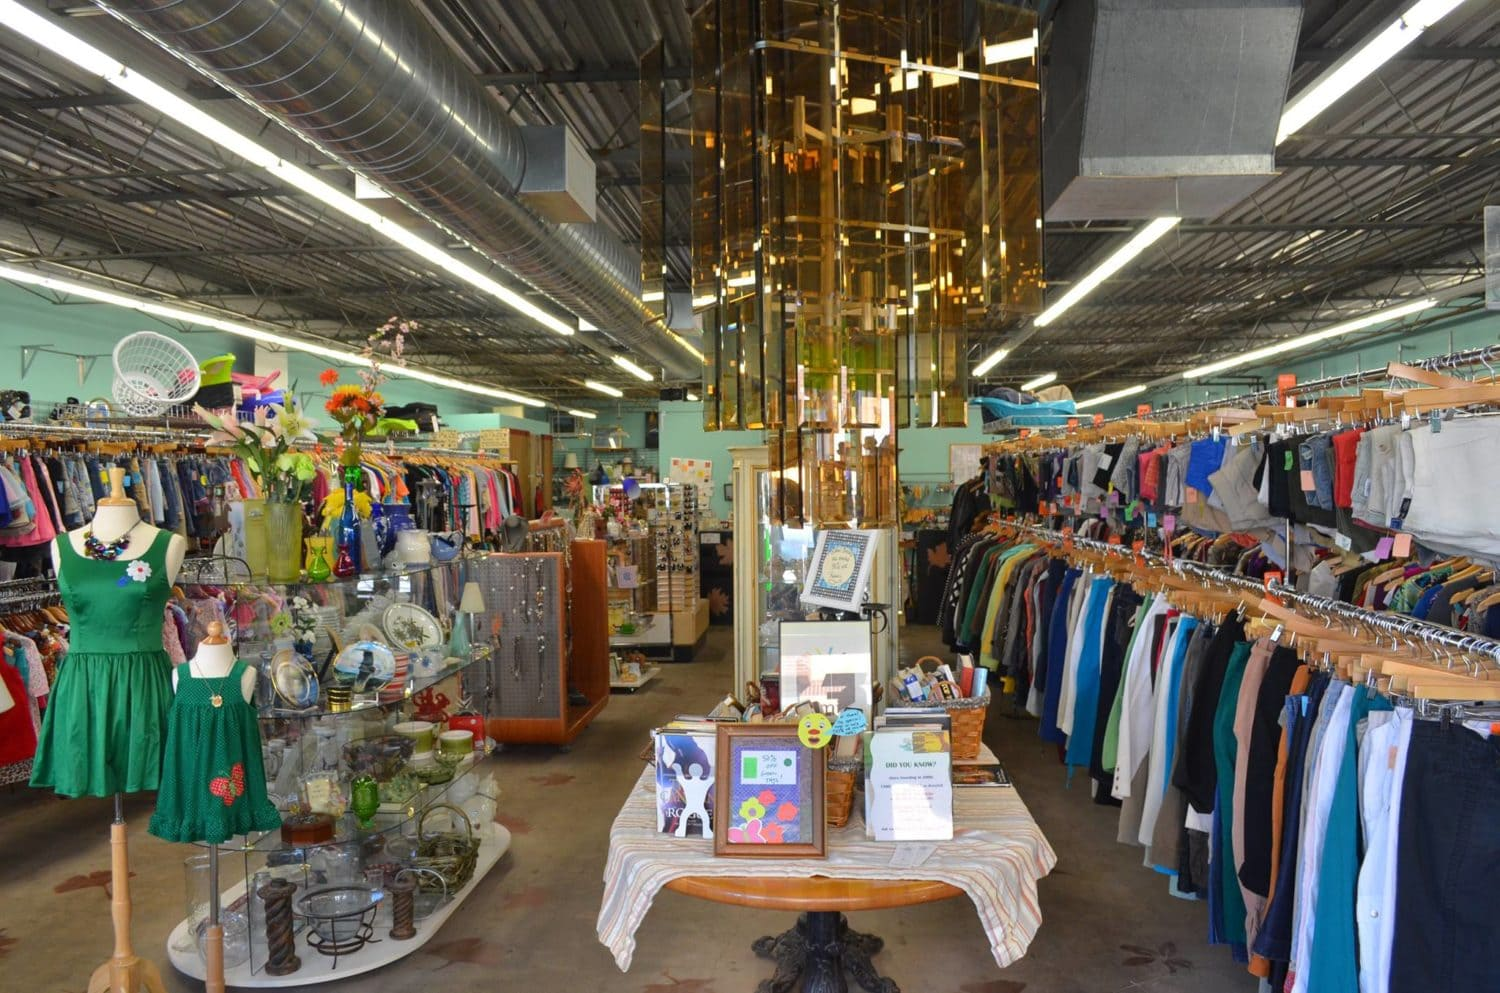 An interior photo of Family Tree Resale showing racks of clothing and tables with jewelry and home decor